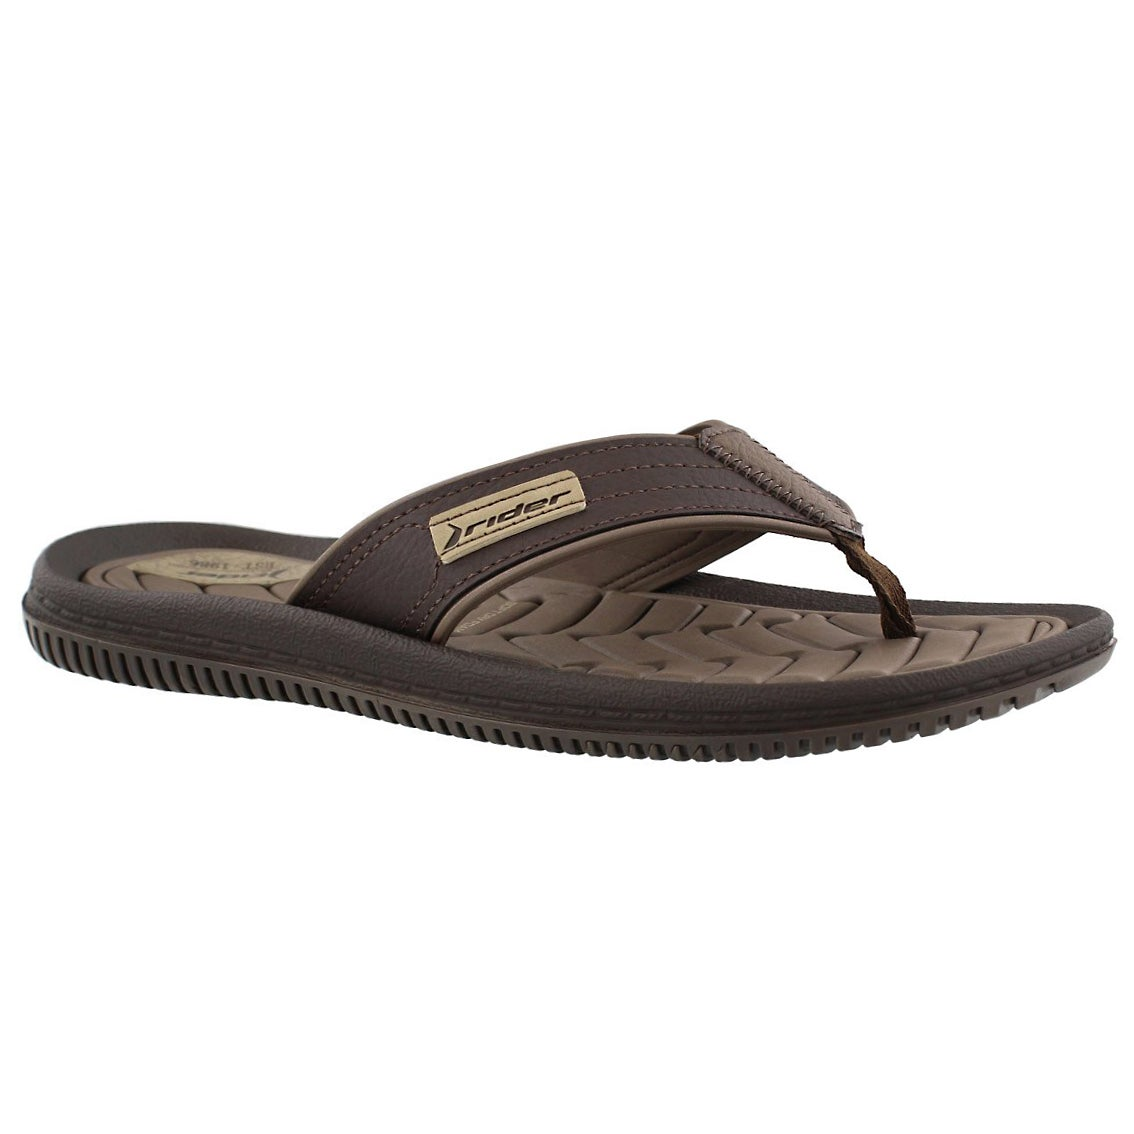 Mns Dunas XIII brown thong sandal